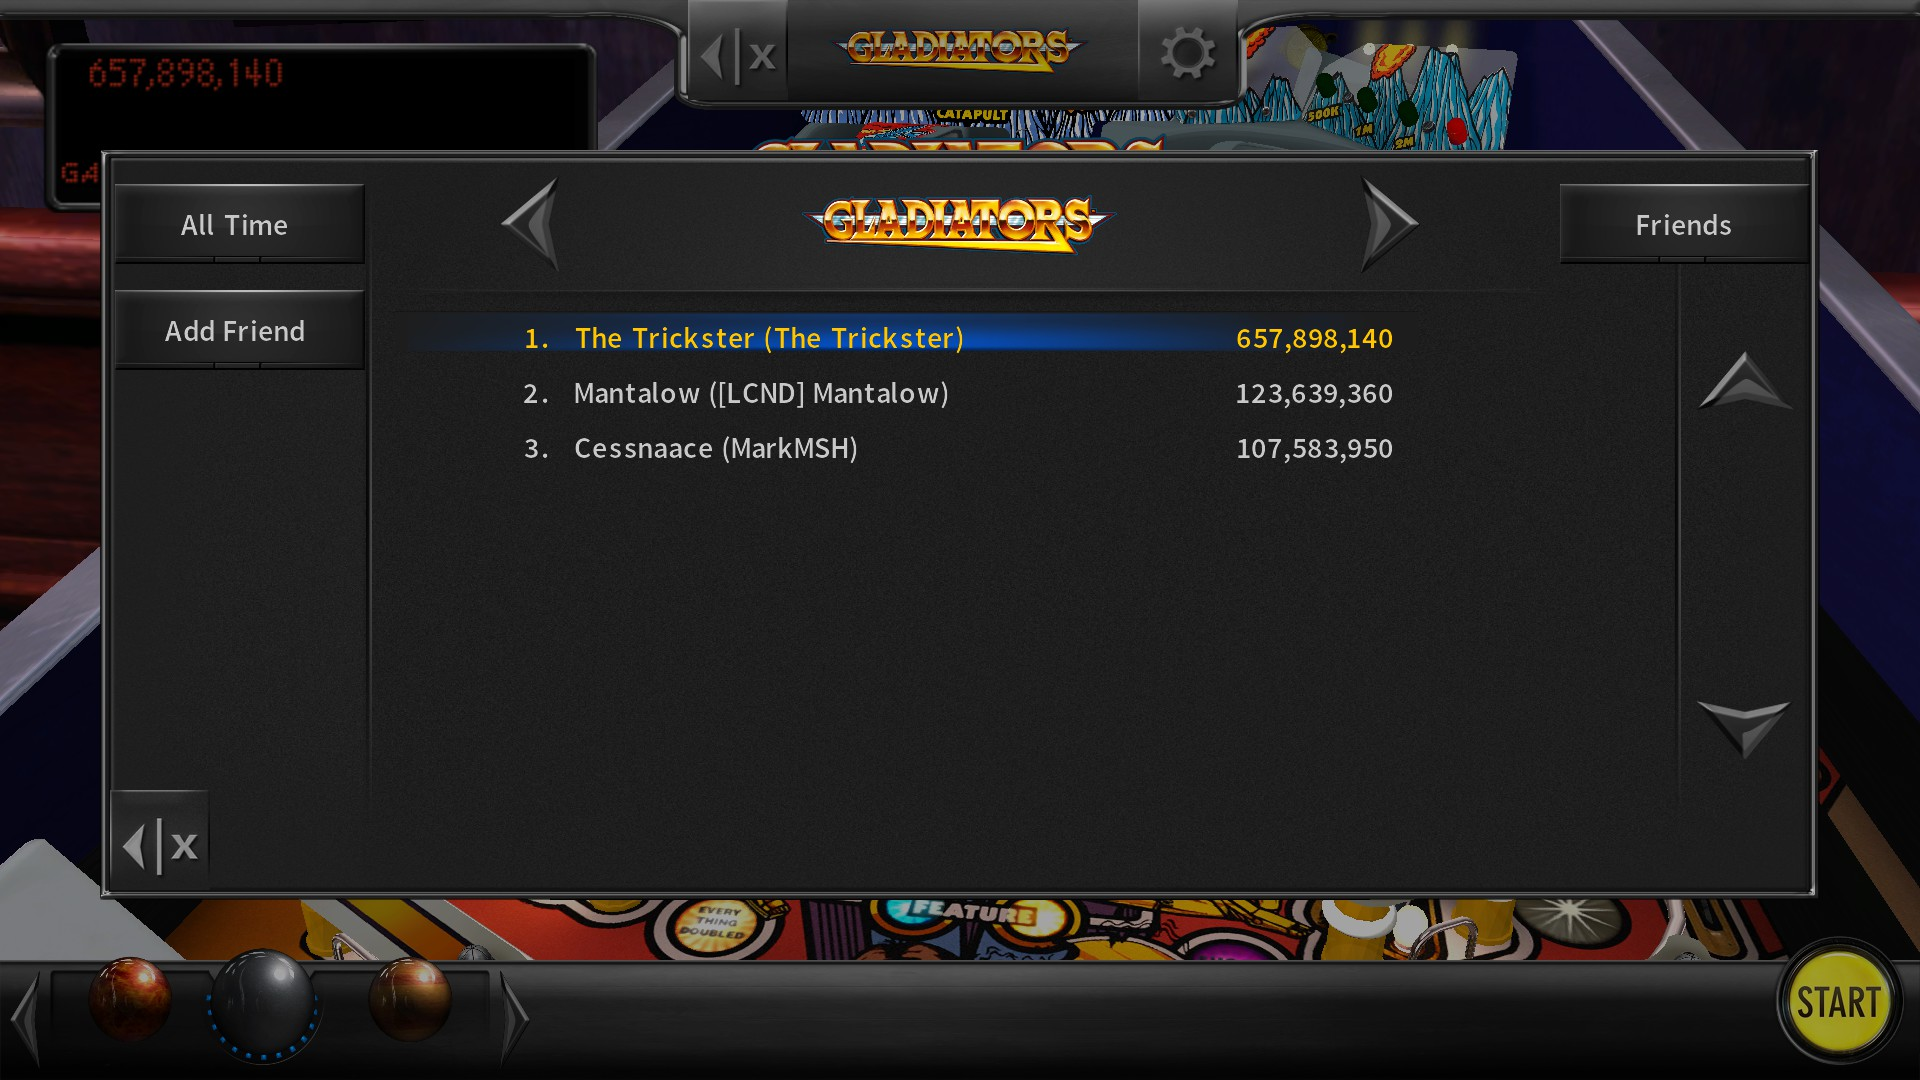 TheTrickster: Pinball Arcade: Gladiators (PC) 657,898,140 points on 2017-01-17 06:20:47